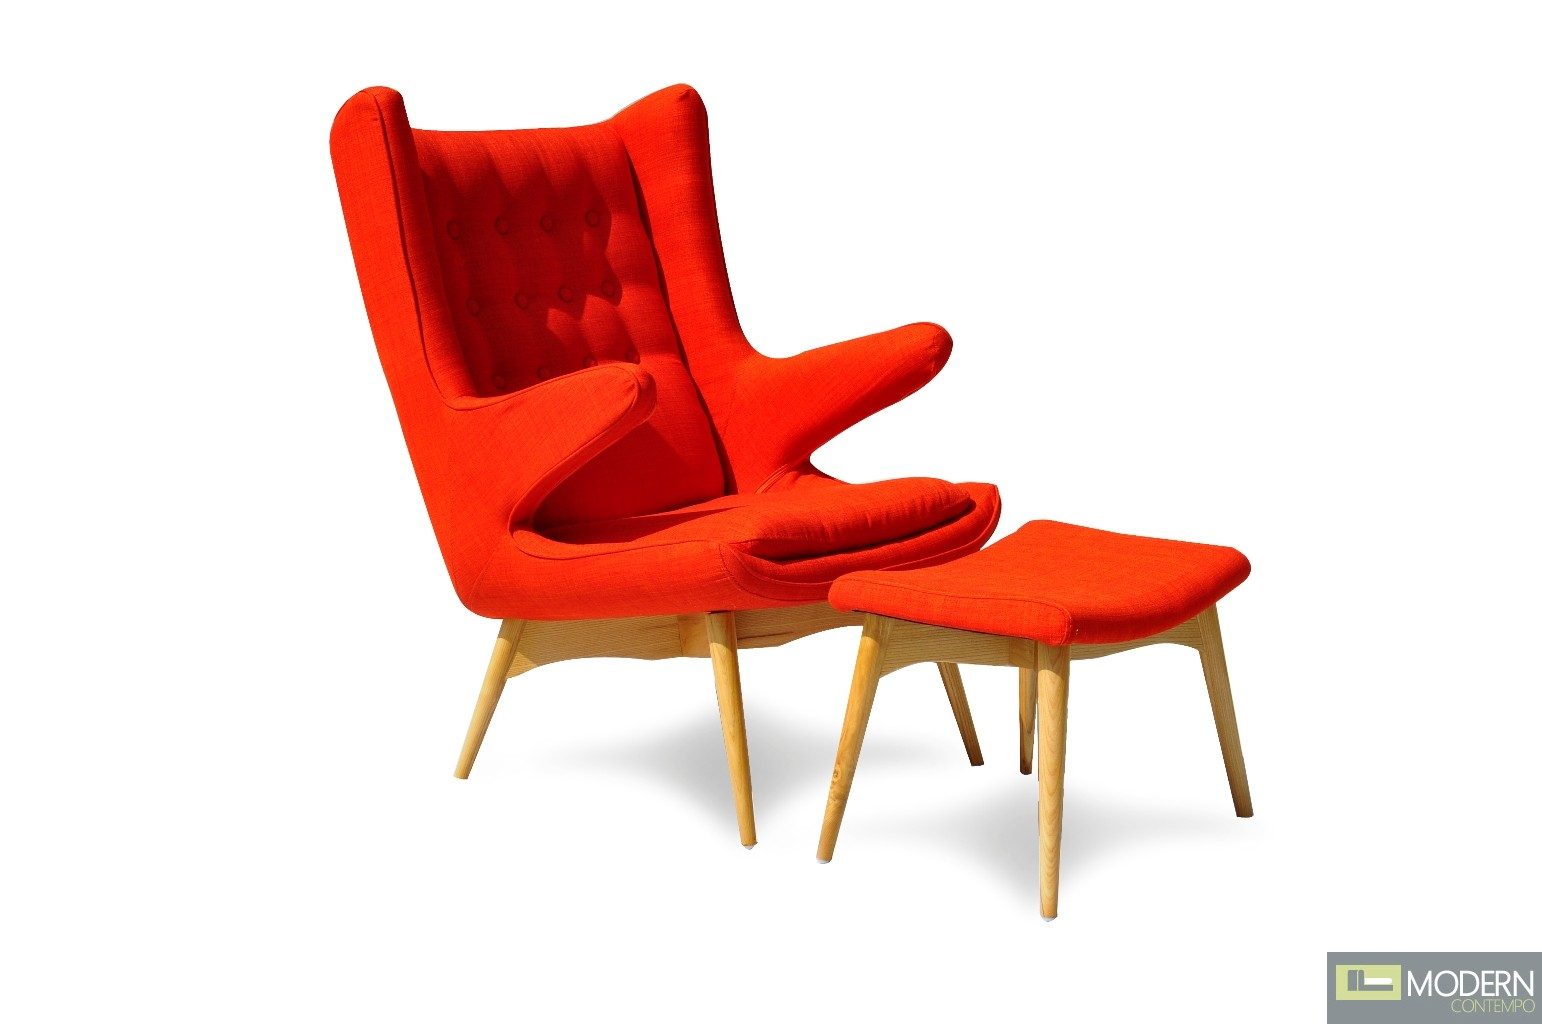 Orange Mid Century Modern Chair Moderno Mid Century Chair And Ottoman Orange